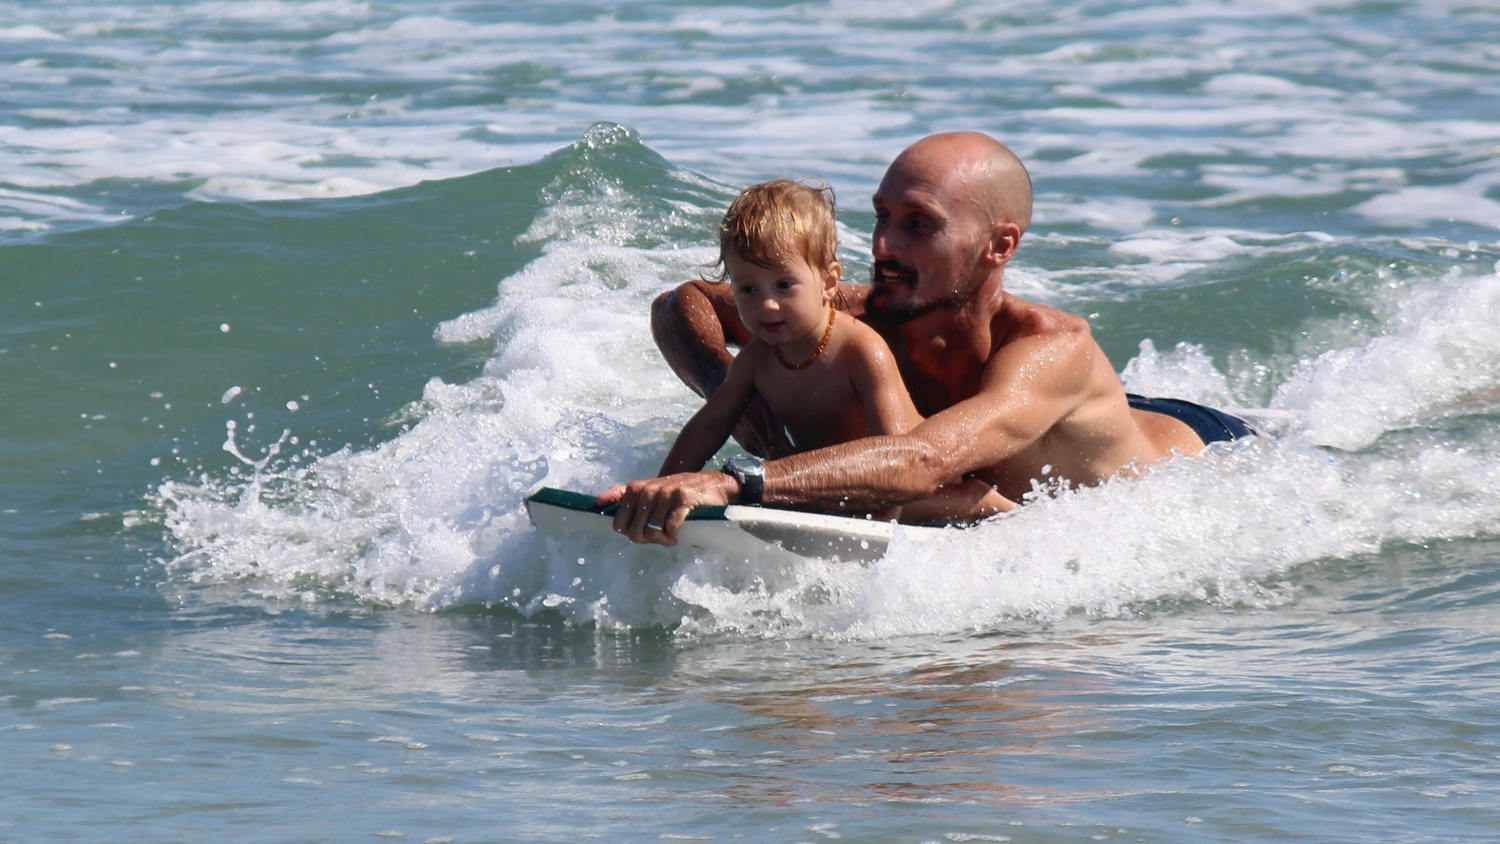 Never too young to surf